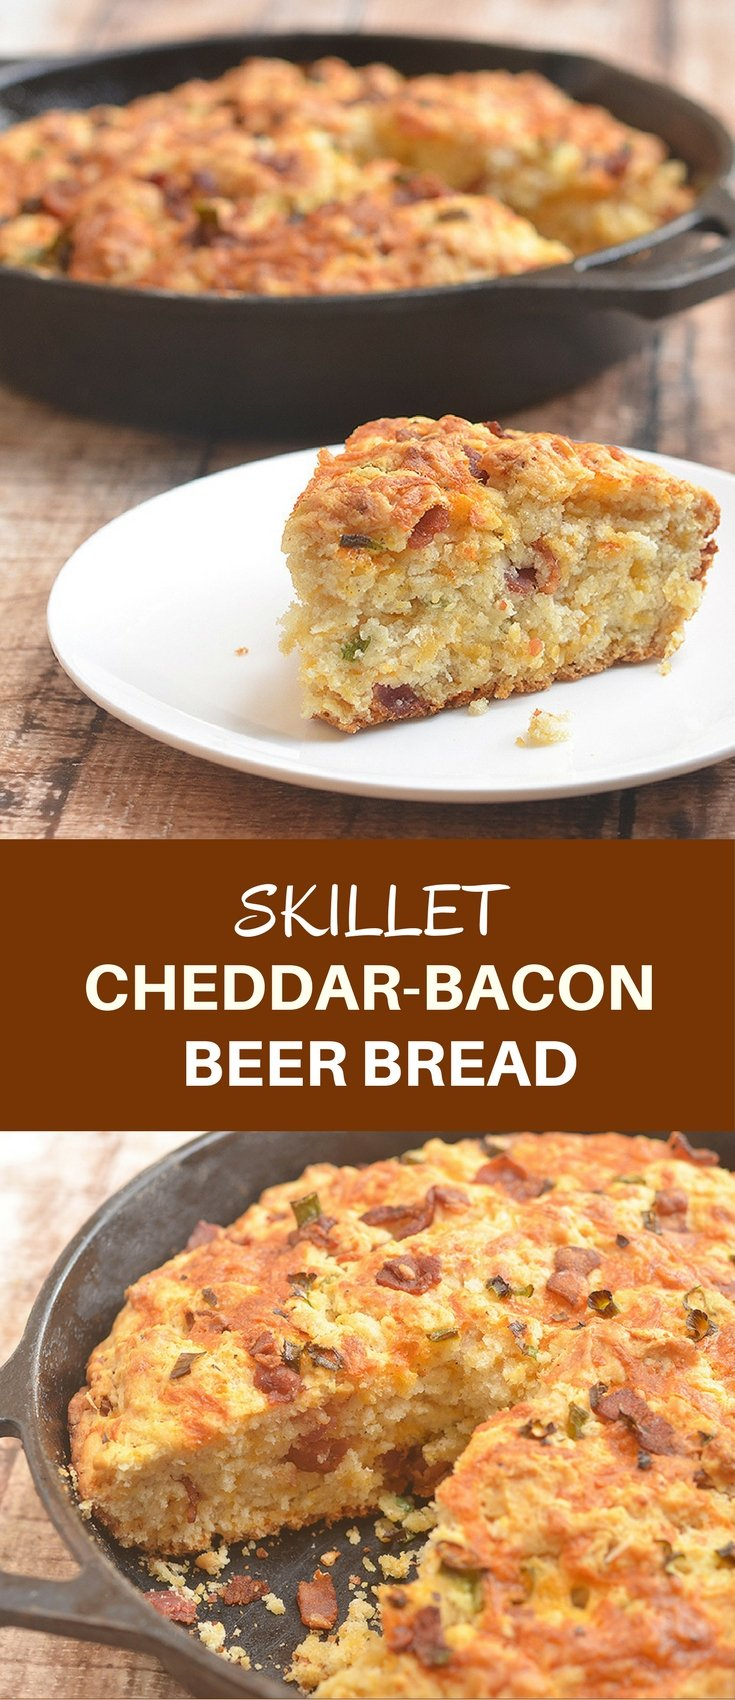 Skillet Cheddar-Bacon Beer Bread is a savory quick bread with smoky bacon, sharp cheddar, and green onions. Golden and crisp on the outside and moist and fluffy on the inside, it's the perfect pair to your favorite hearty soup or homemade chili.